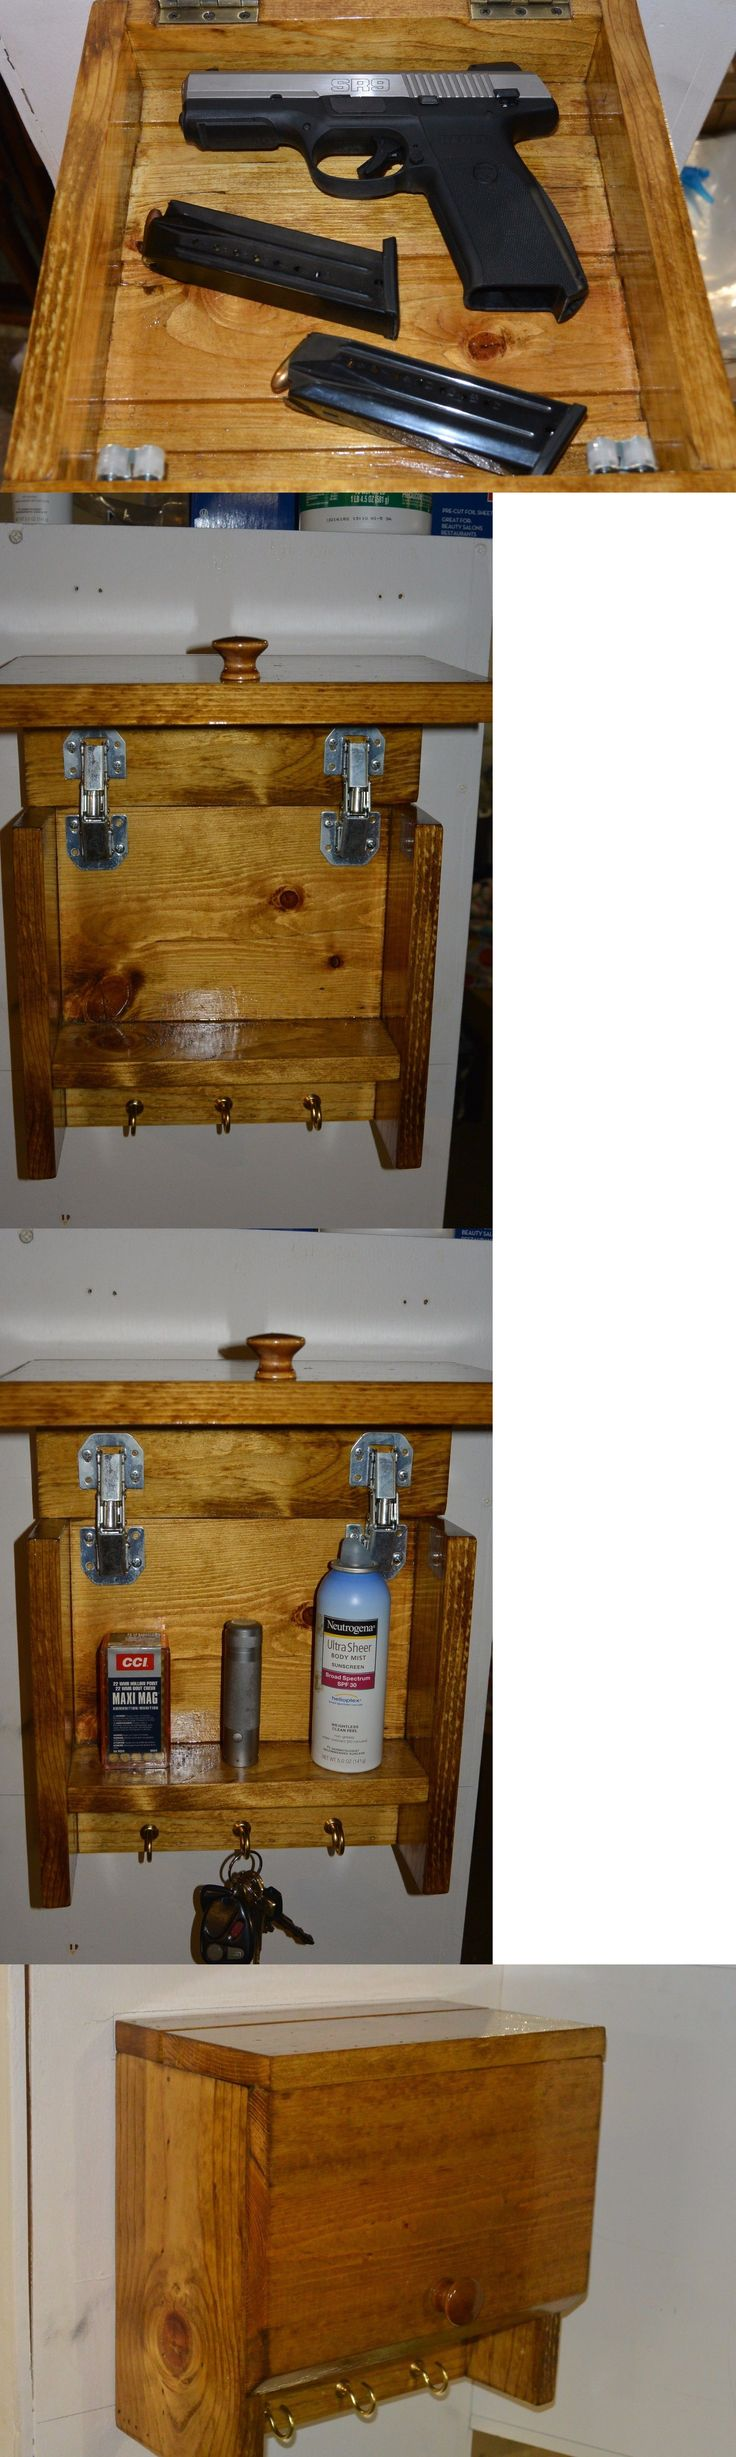 Cabinets and Safes 177877: The Ultimate Secret Compartment Hidden Gun Cabinet Key Rack -> BUY IT NOW ONLY: $96.99 on eBay!